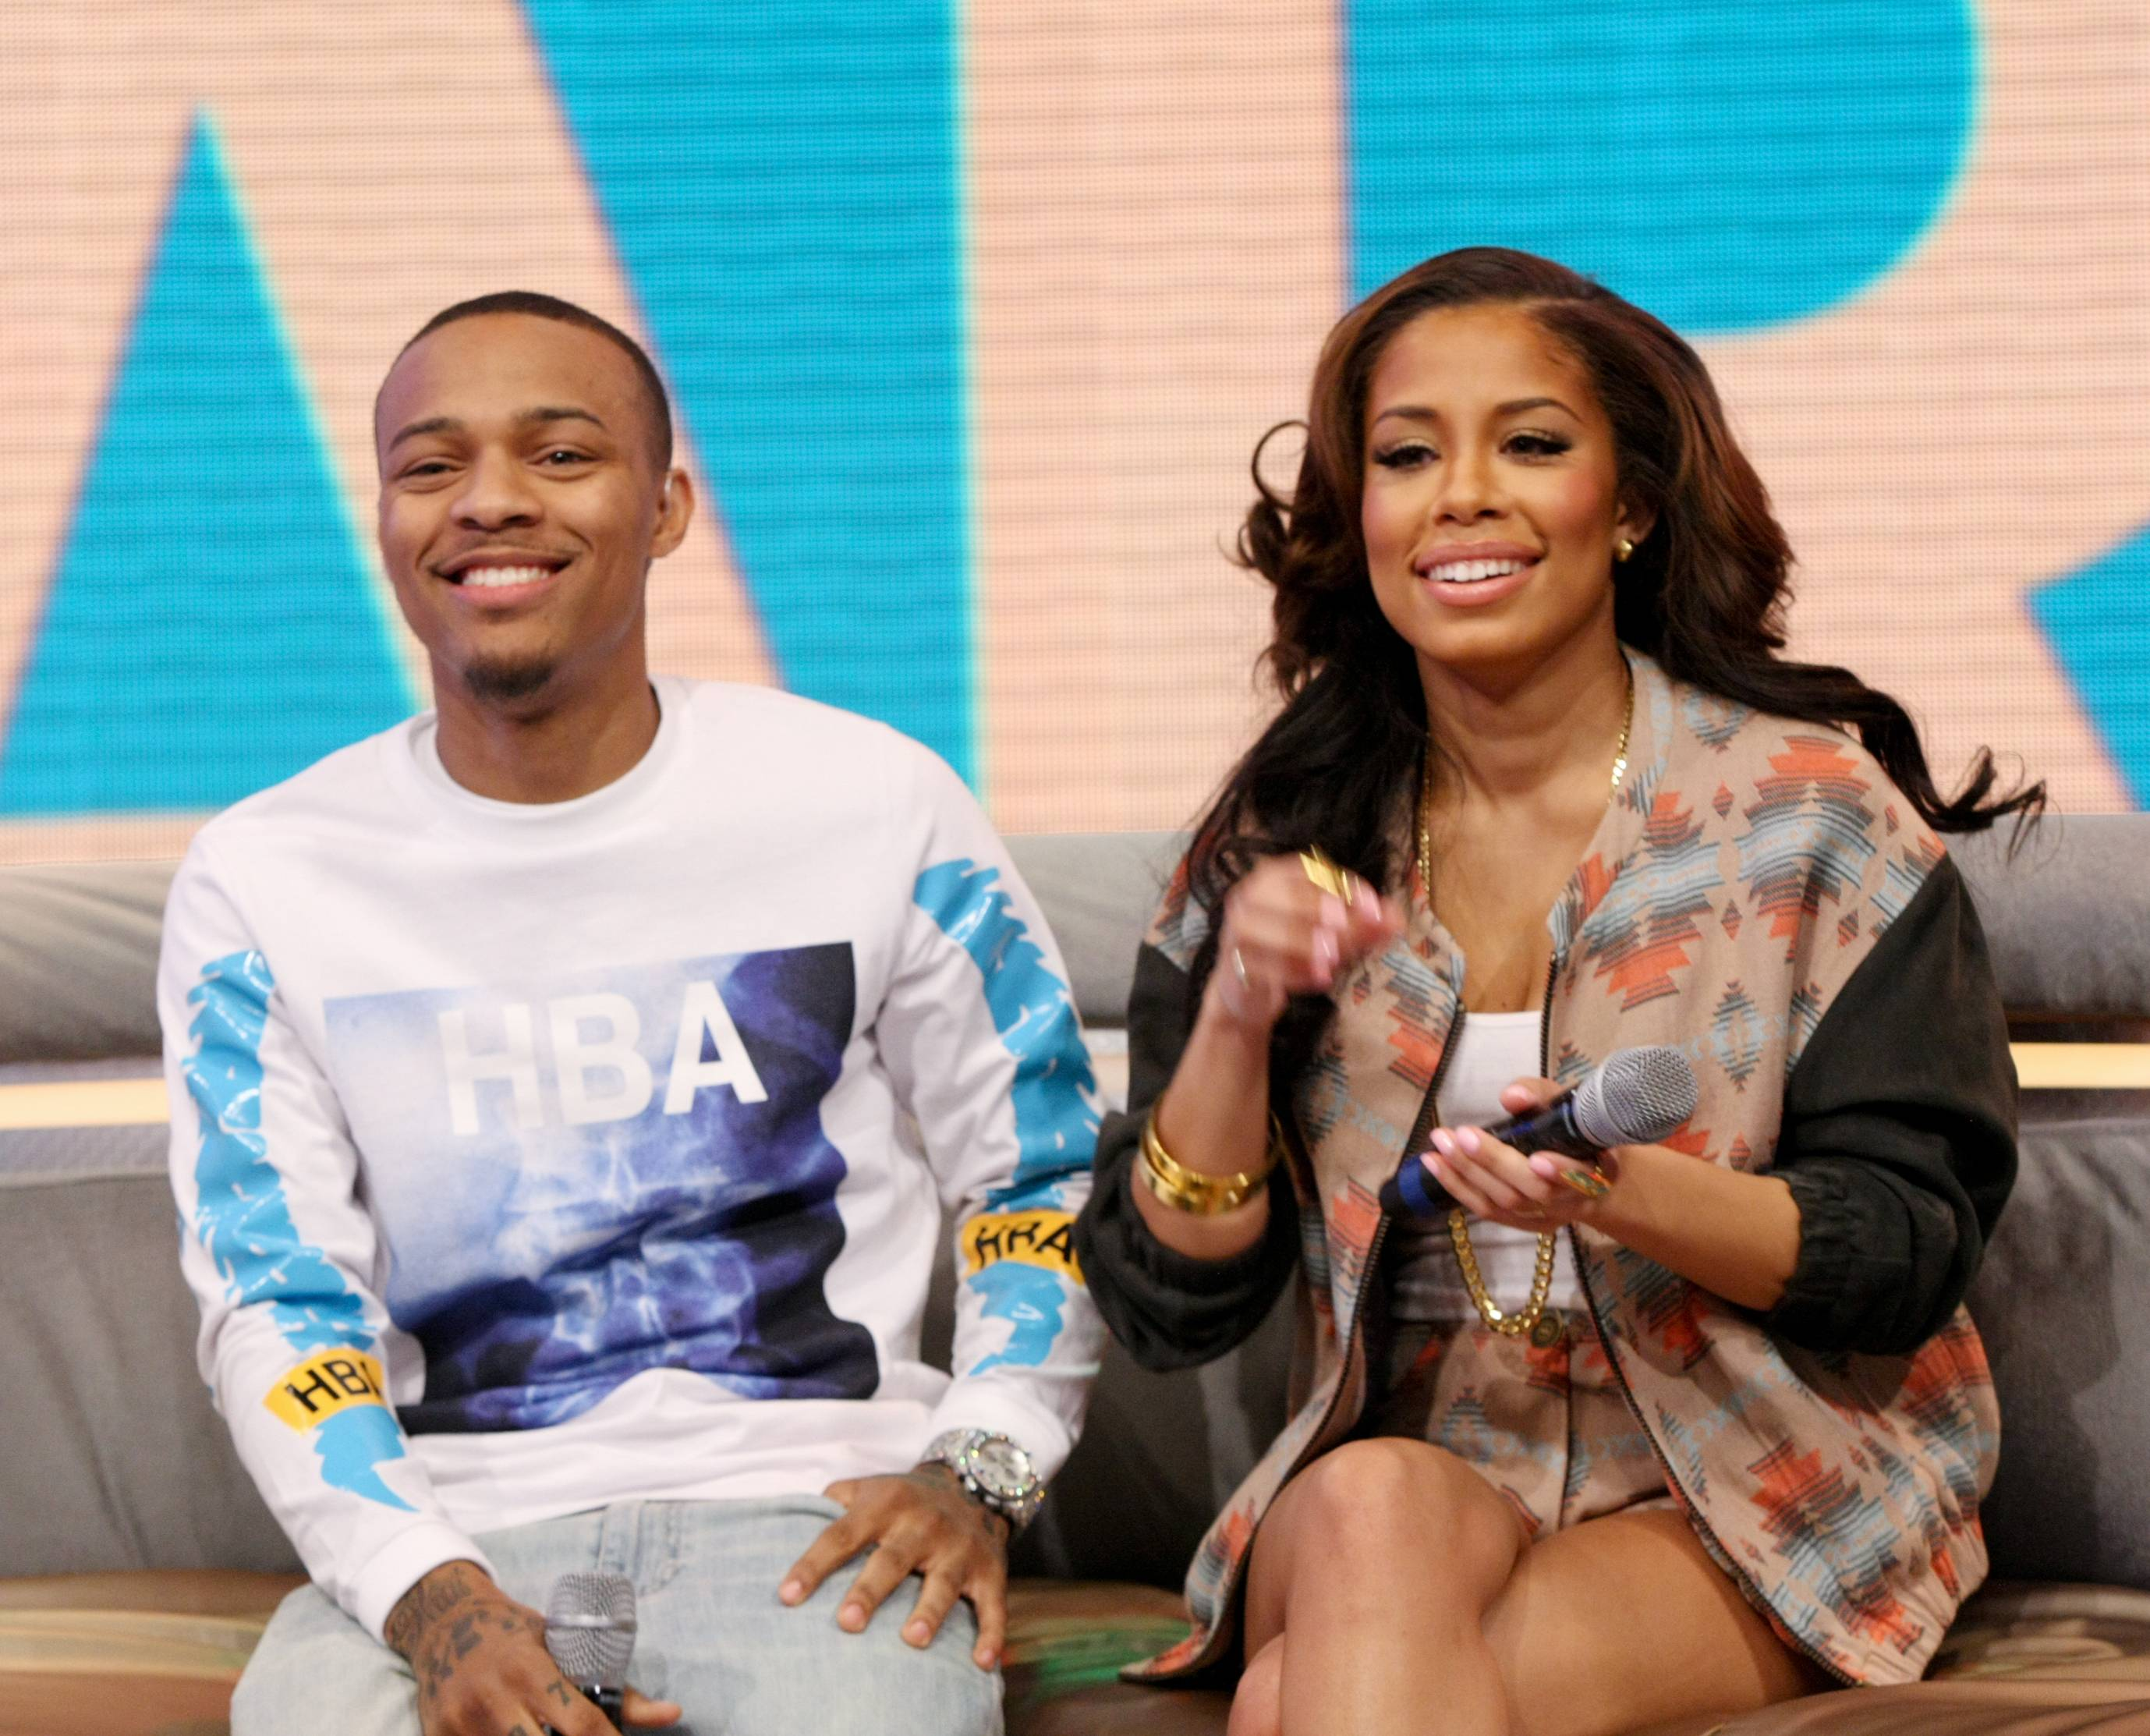 Our Favs - (Photo: Bennett Raglin/BET/Getty Images for BET)